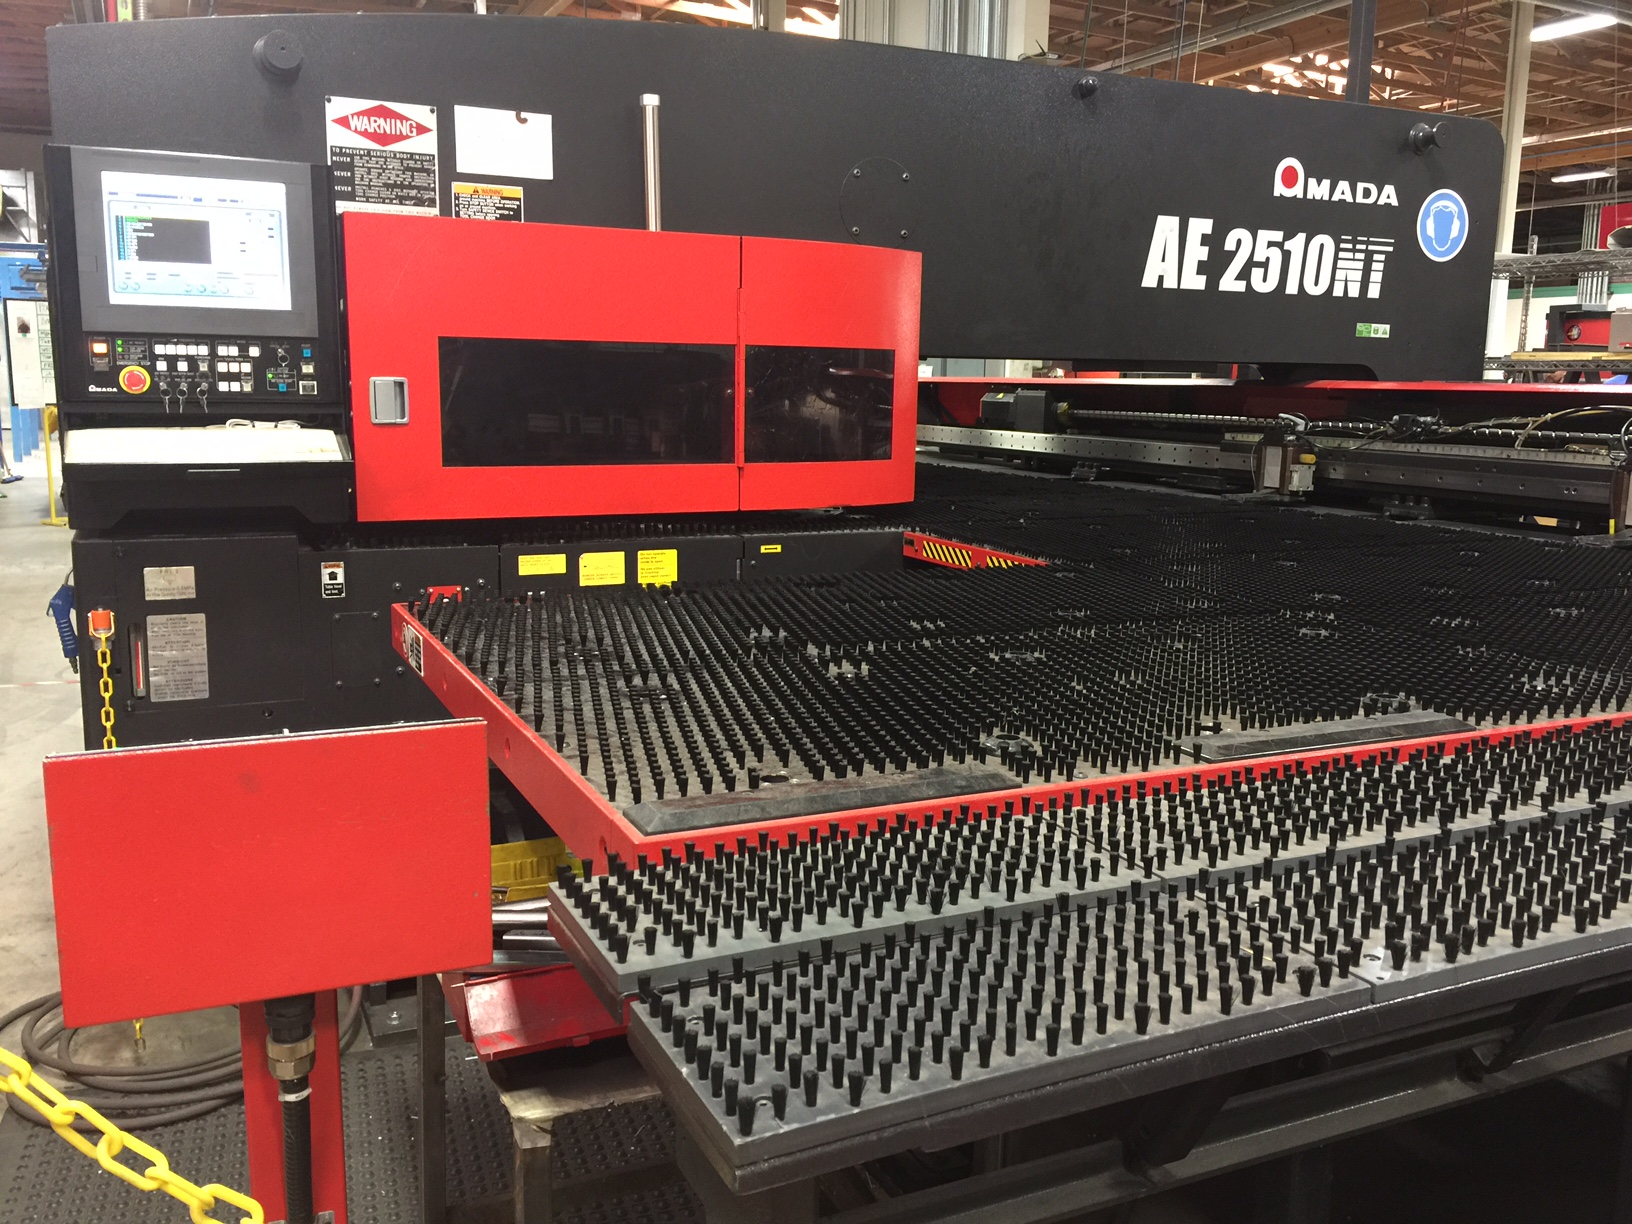 Amada Punch AE 2510NT at Integrated Metal Components, Inc